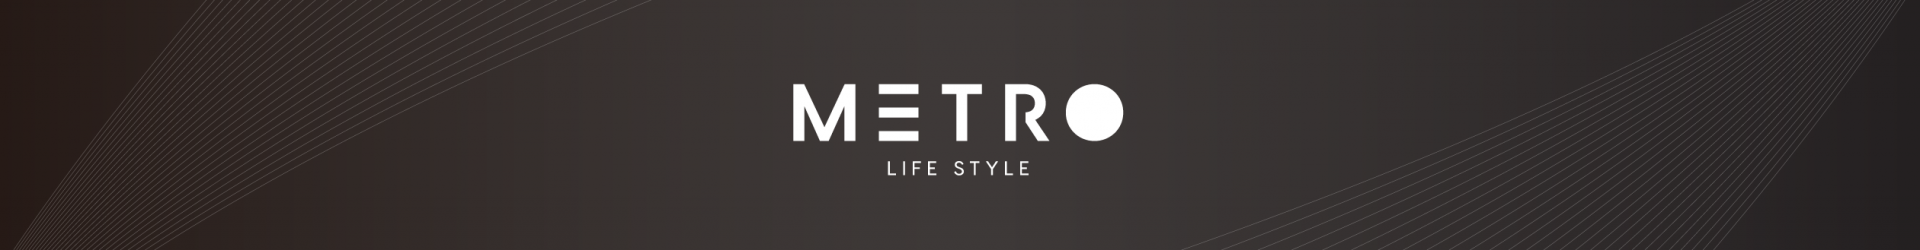 Metropolitan Storage: The crazy sales of RENT 2 get 1 FREE in the last 30 units